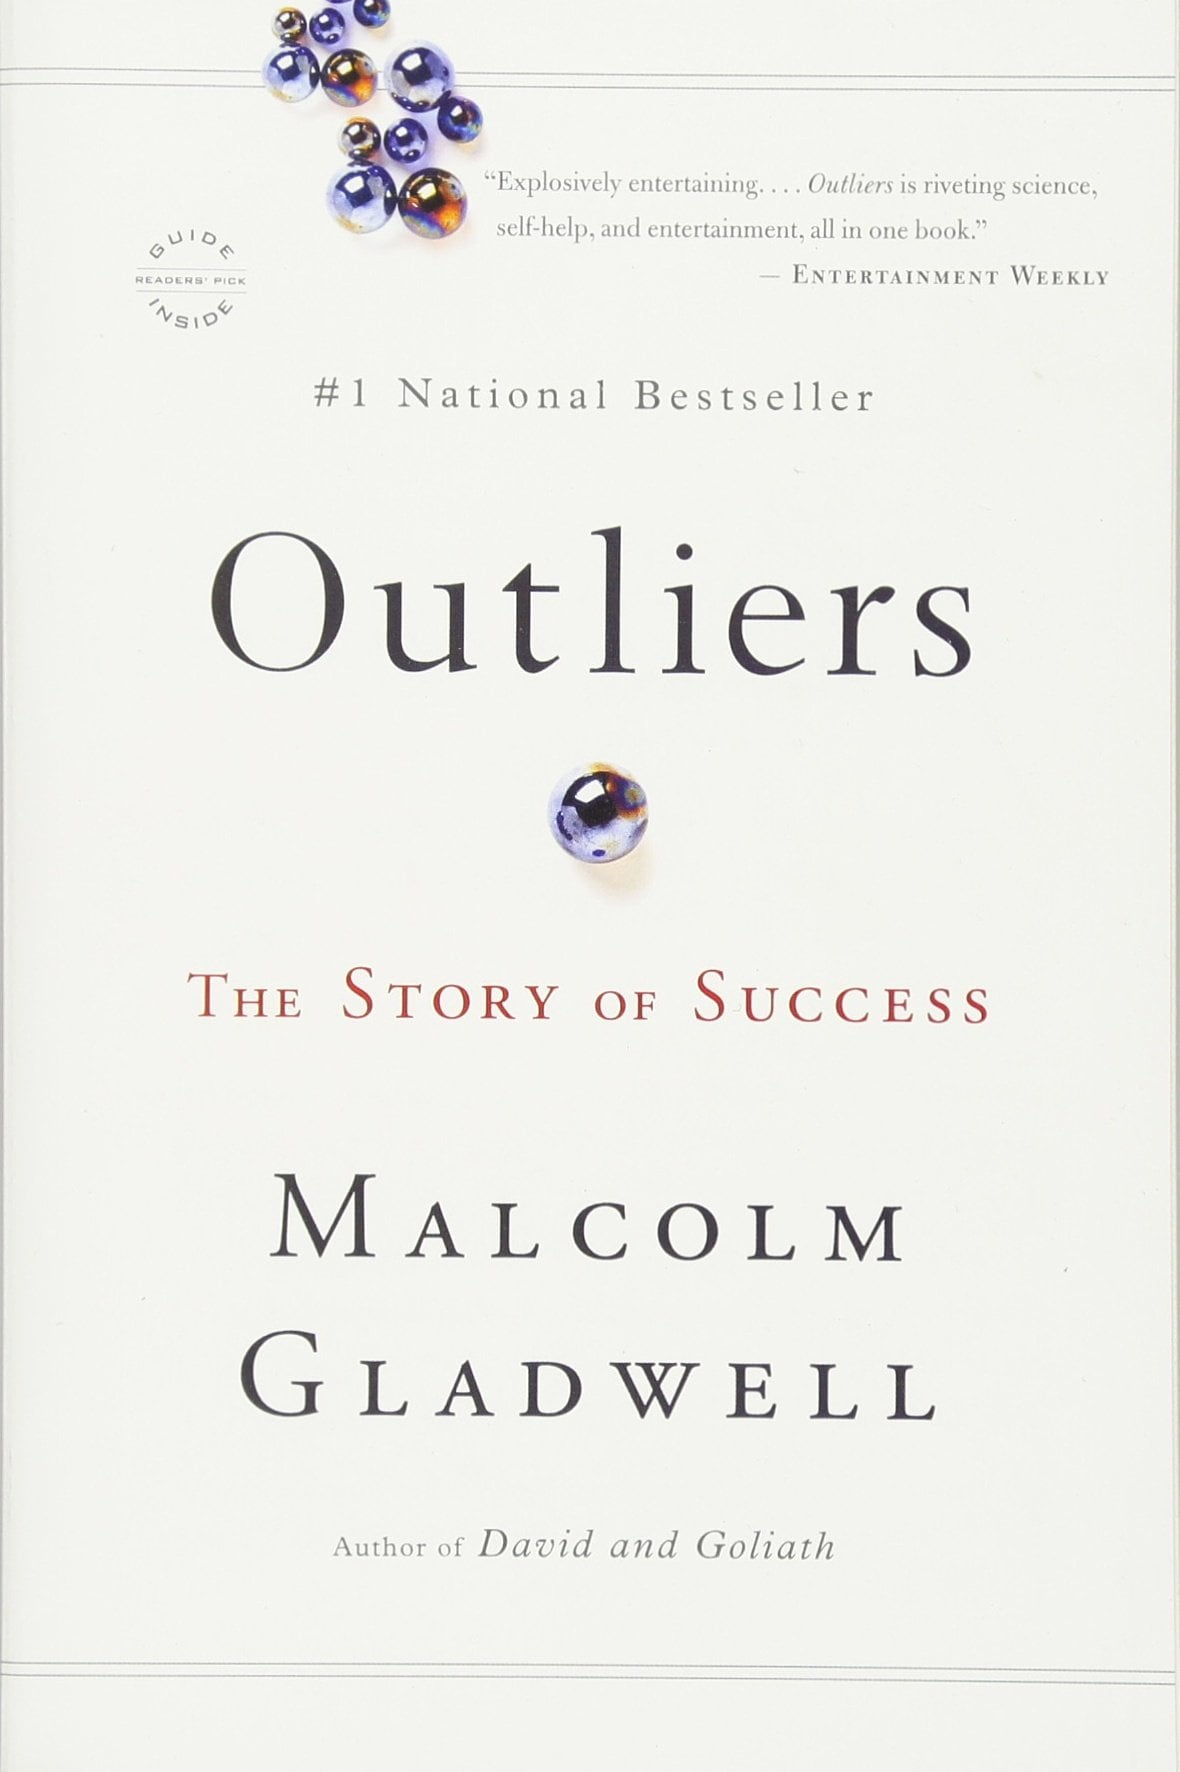 Malcolm Gladwell With Paul Smith [Podcast]